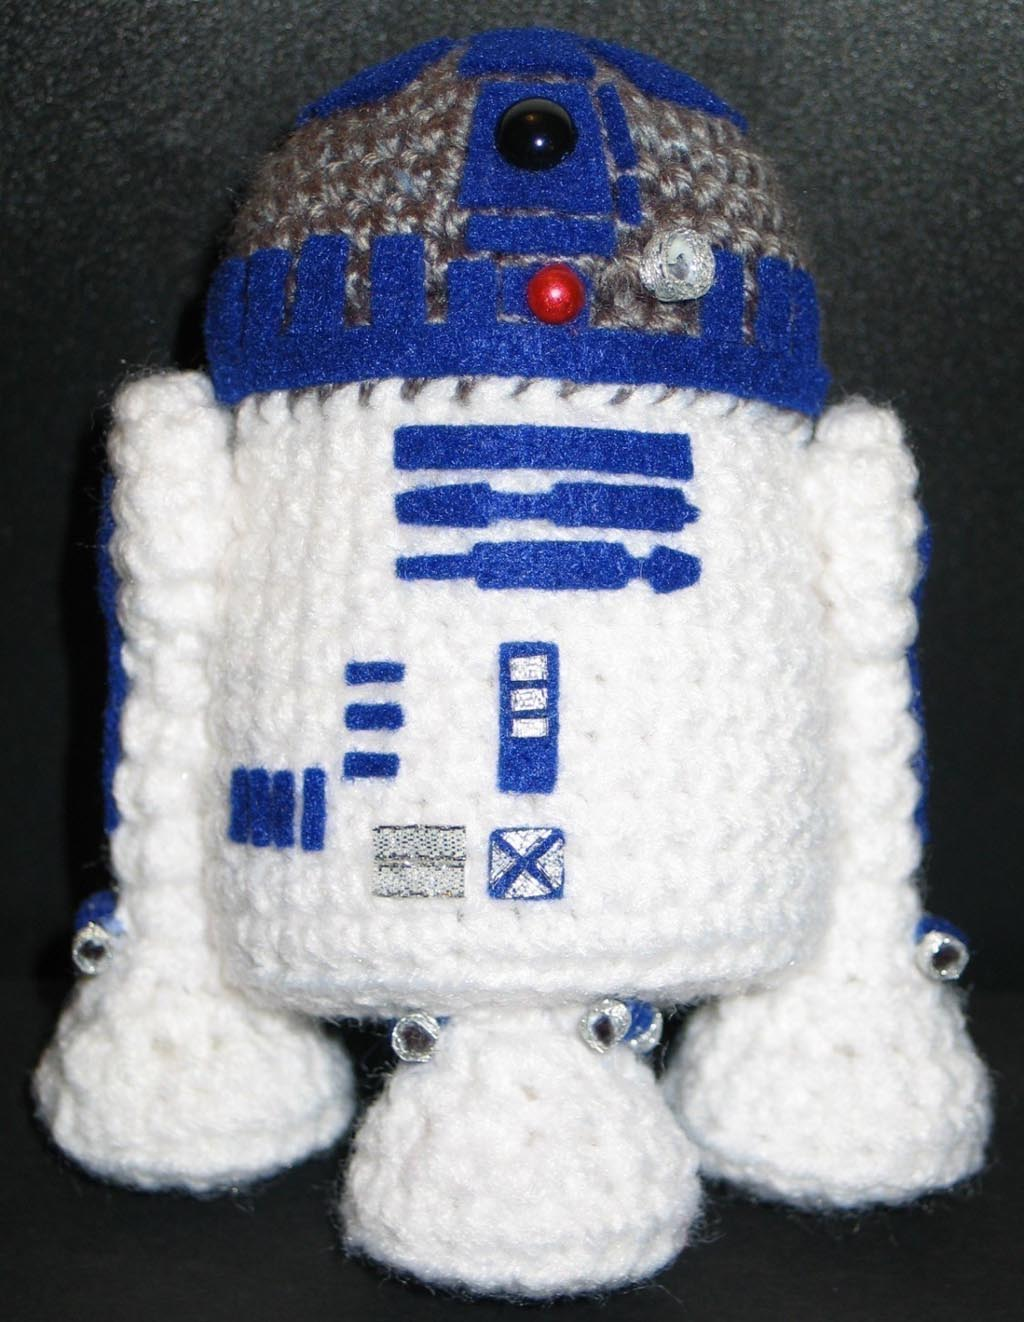 Amigurumi Snowman Pattern : Make Your Own Star Wars R2-D2 Amigurumi Gadgetsin